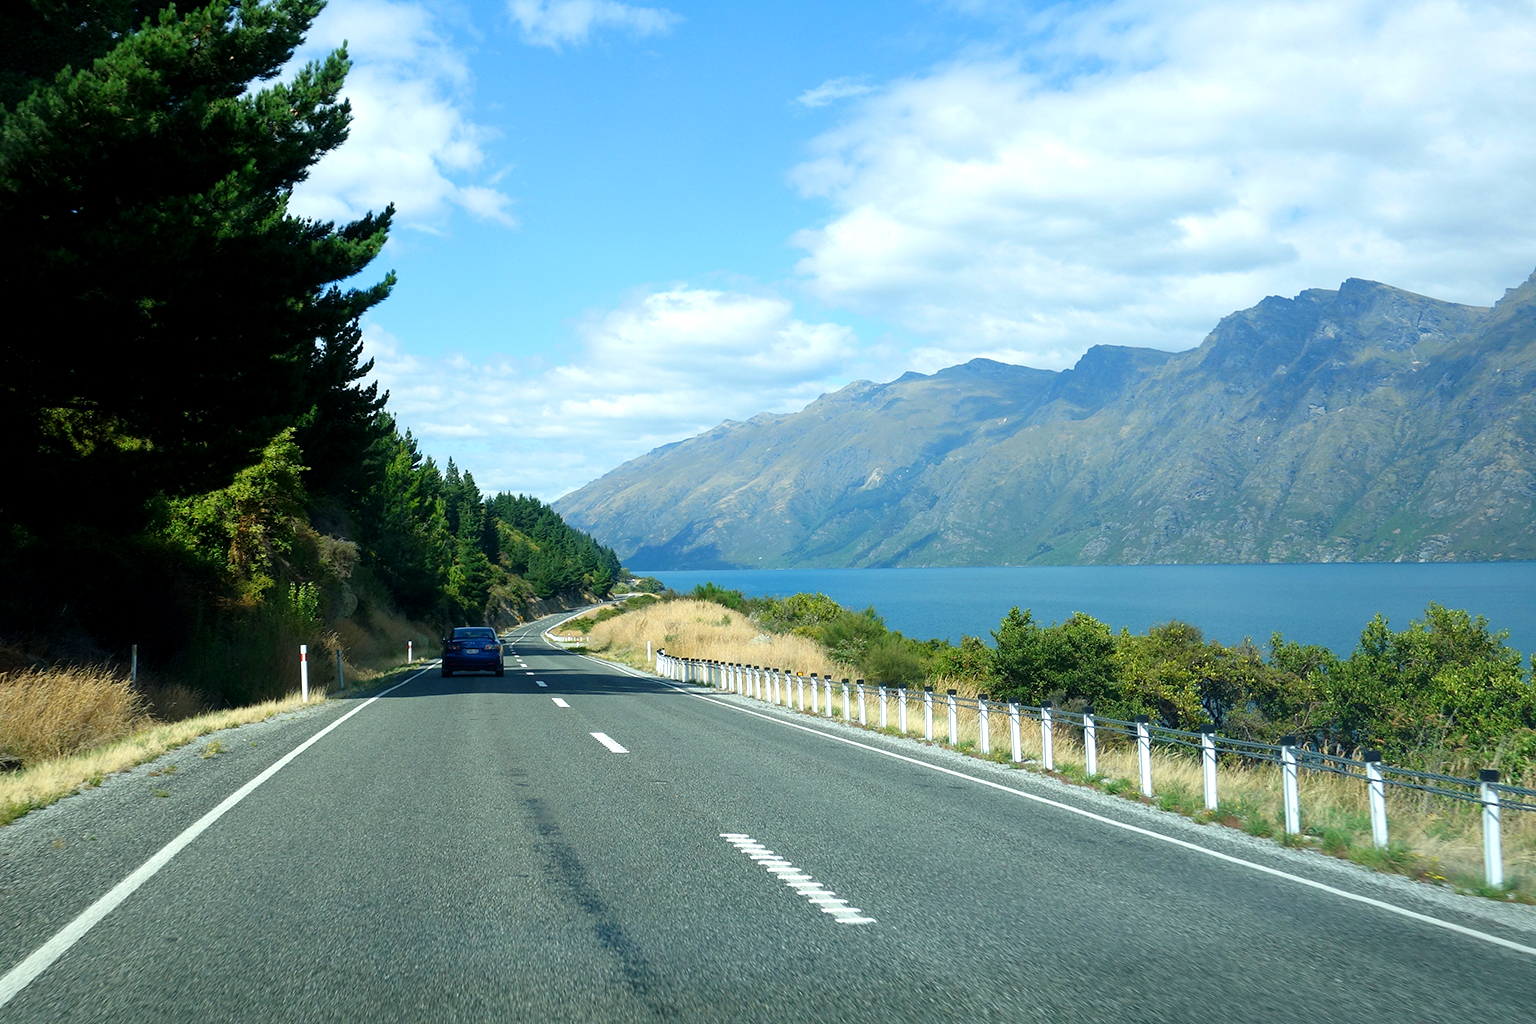 Driving from Queenstown to Invercargill